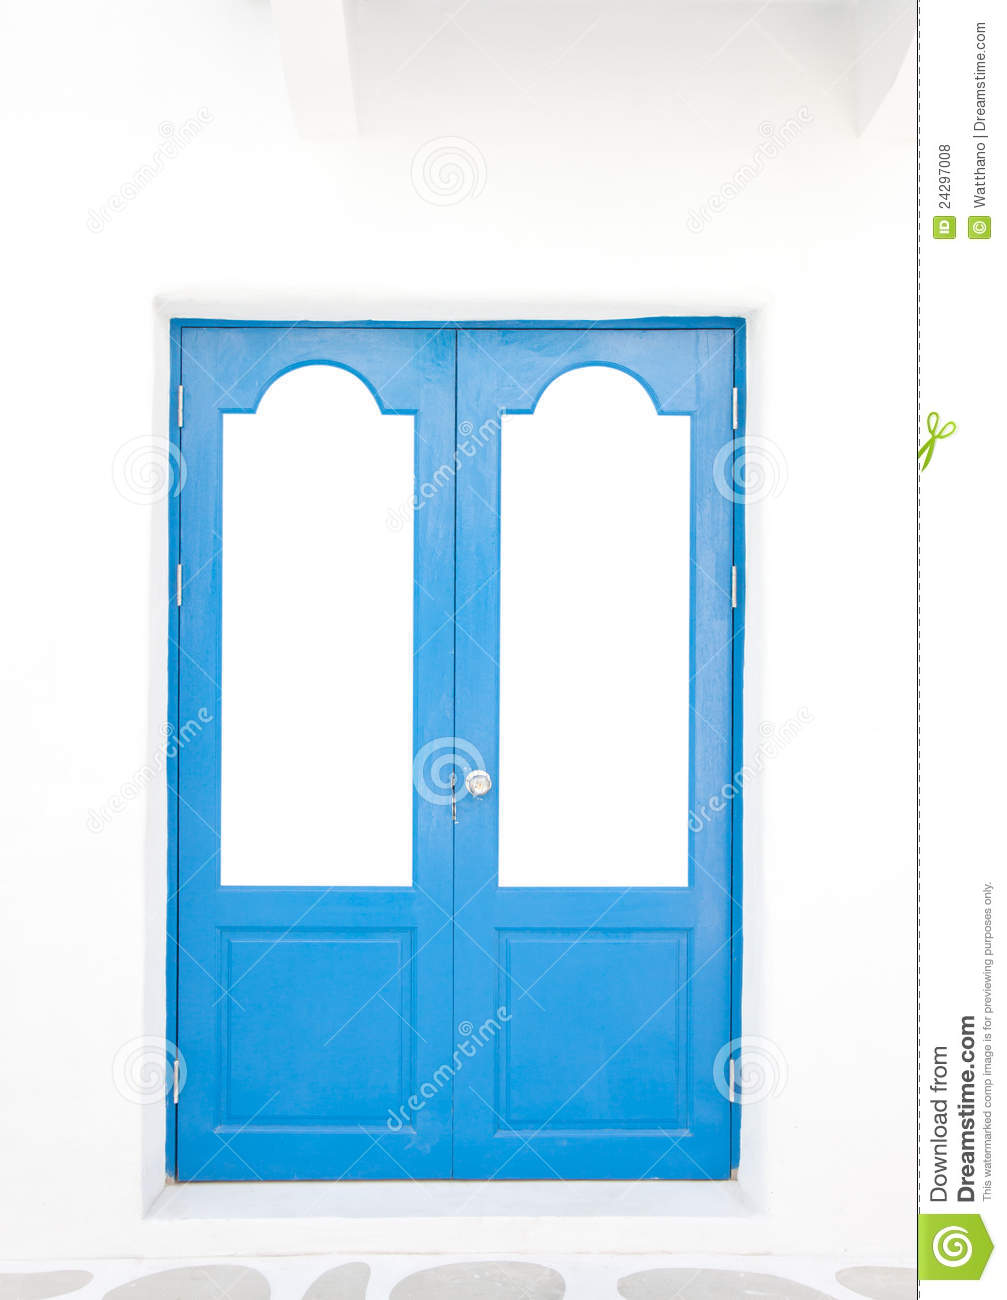 Door Frame In Greek Style On White Back Stock Photo - Image of town ...